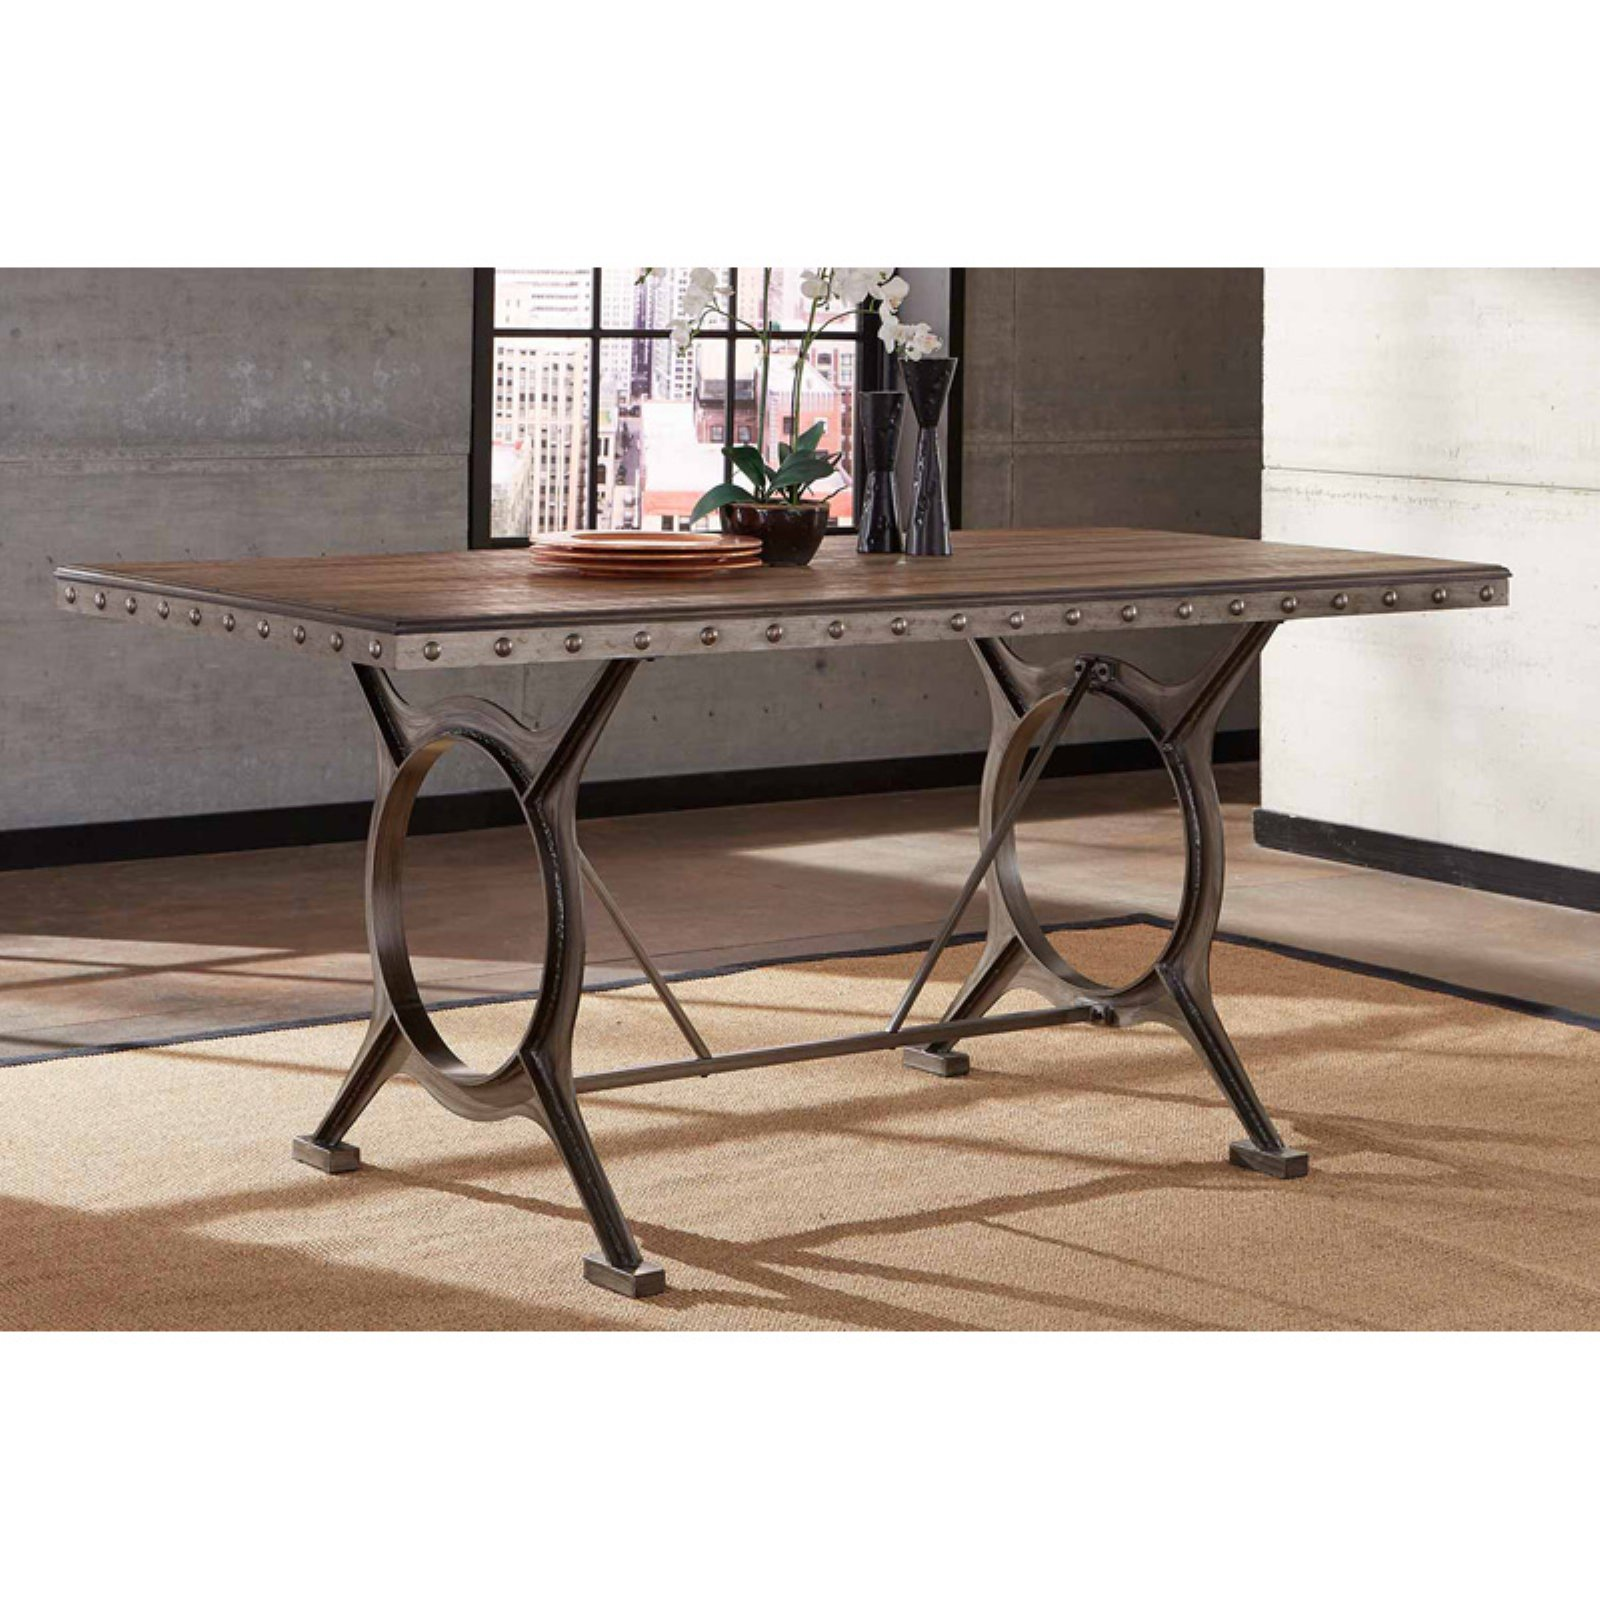 Hillsdale Furniture Paddock Counter Height Dining Table